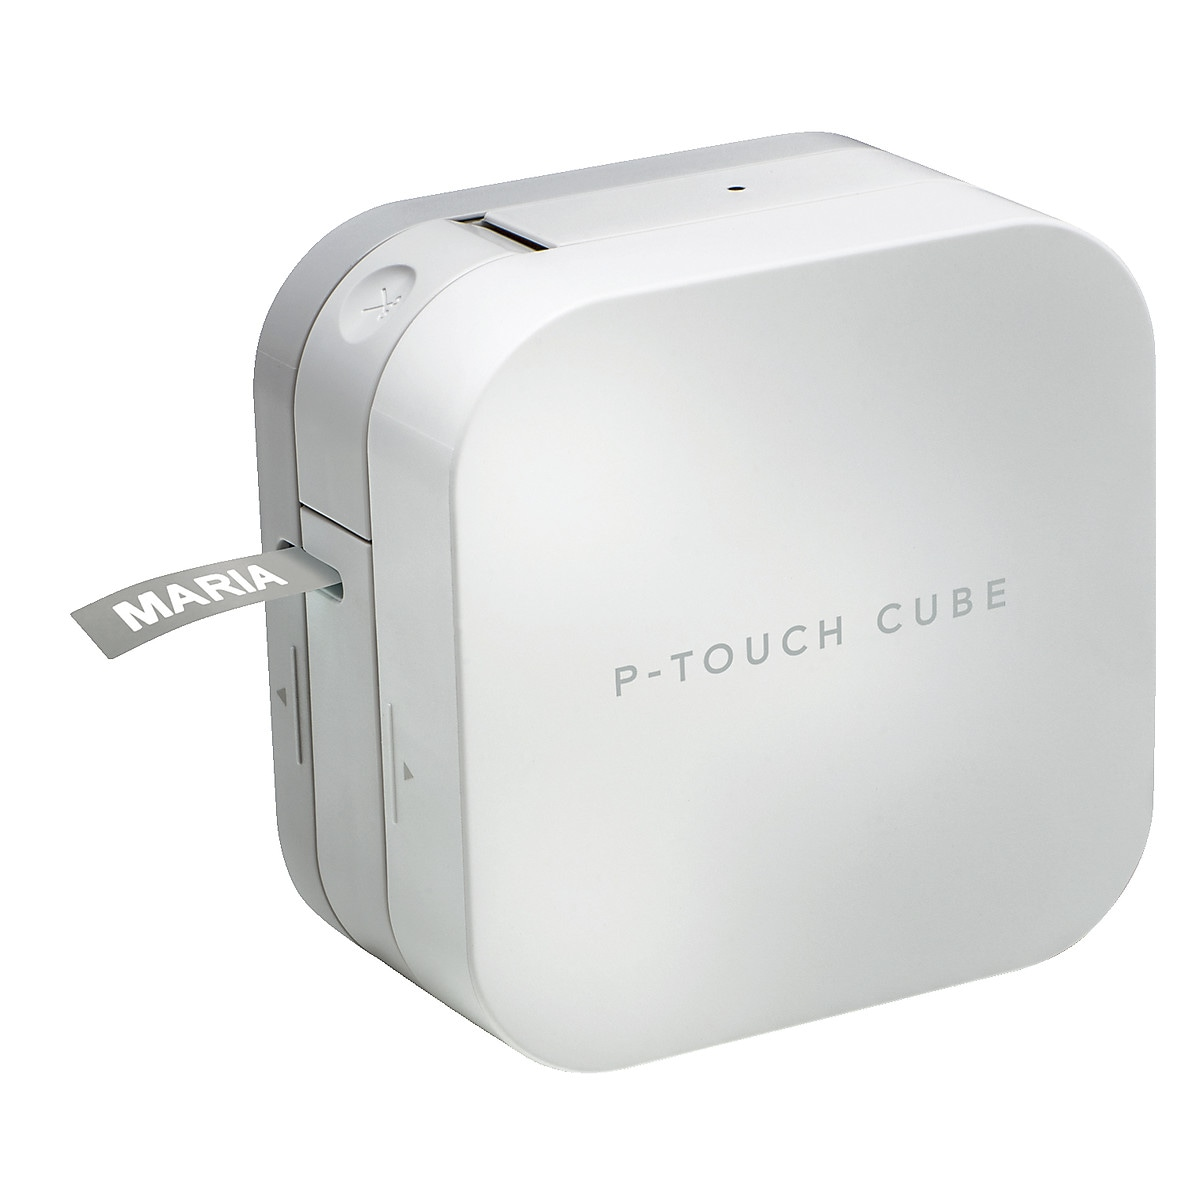 Märkmaskin Brother P-touch Cube